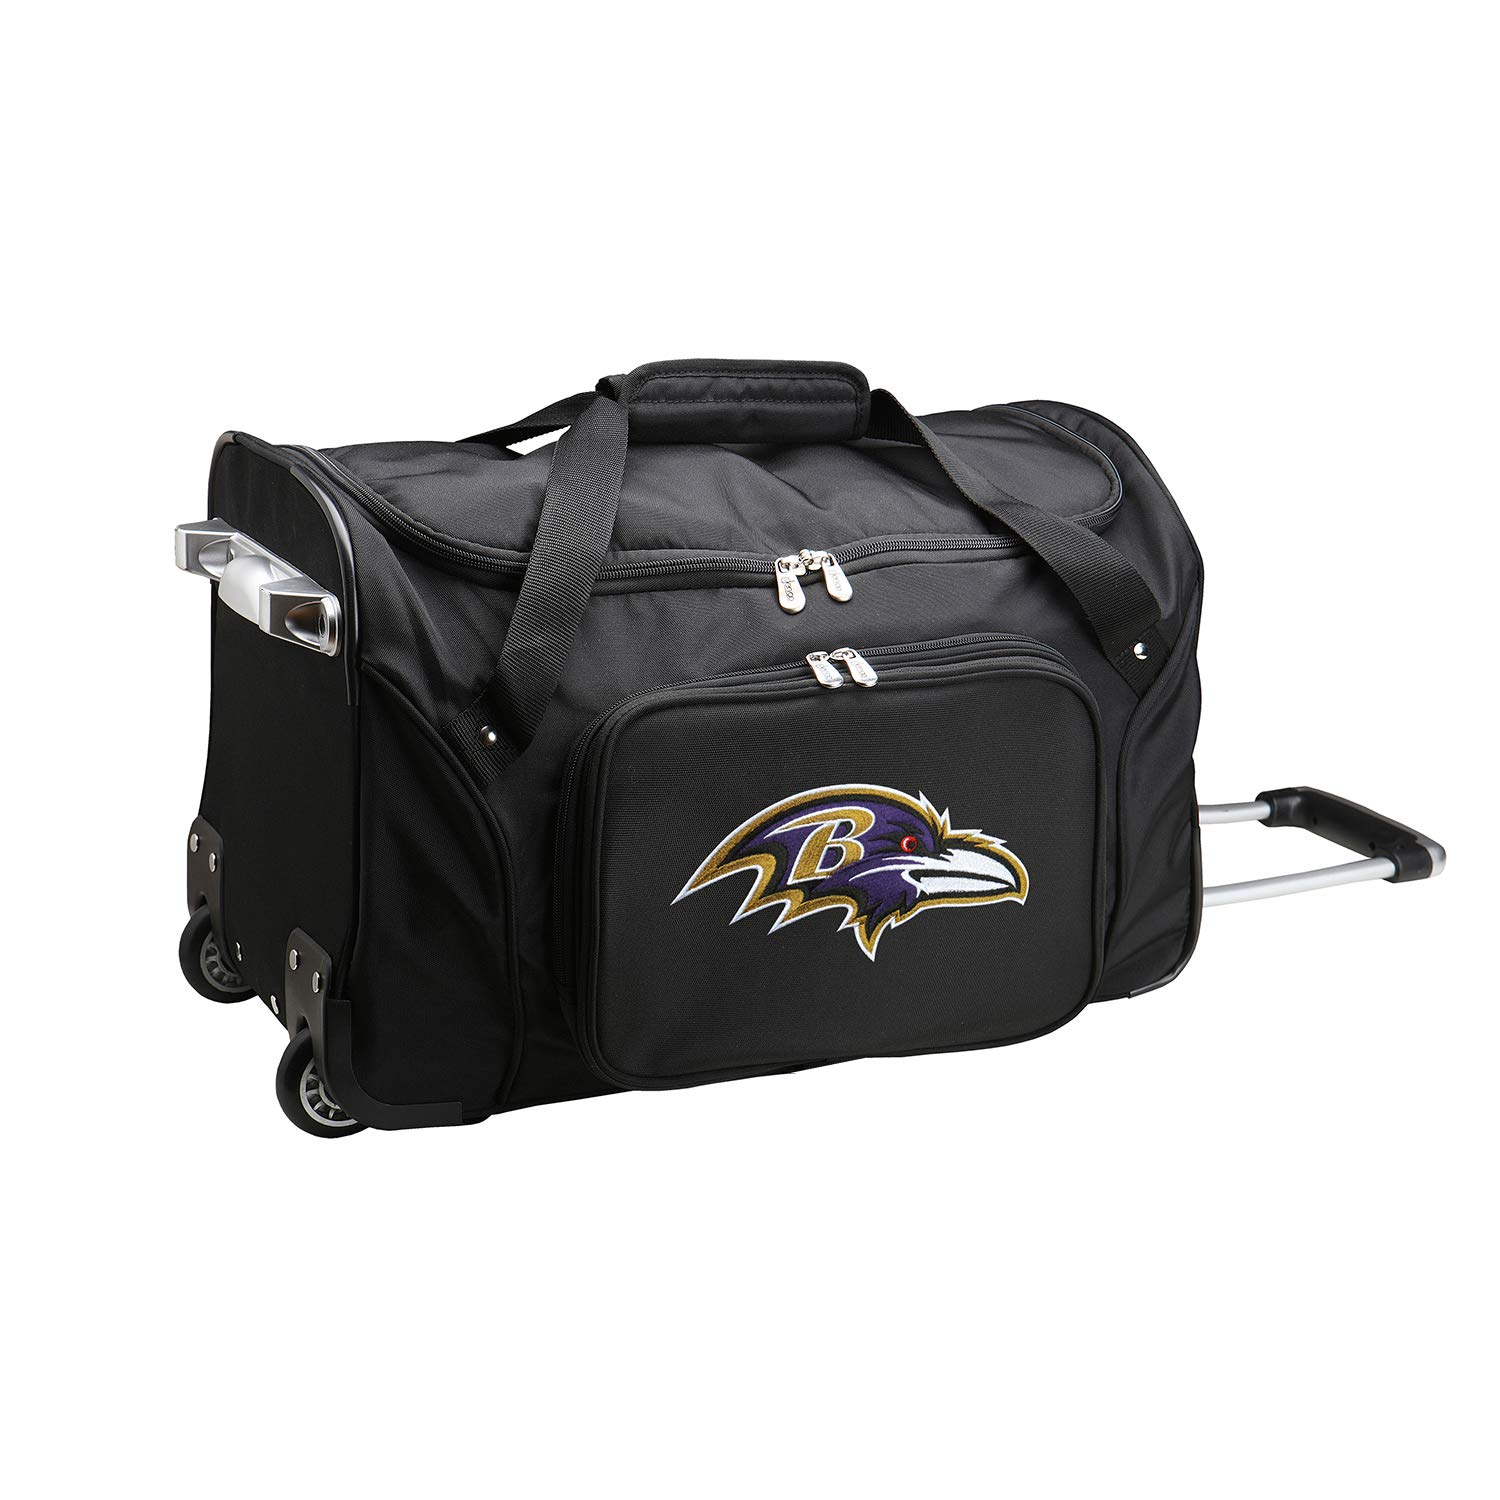 NFL Baltimore Ravens Wheeled Duffle Bag, 22 x 12 x 5.5, Black by Denco